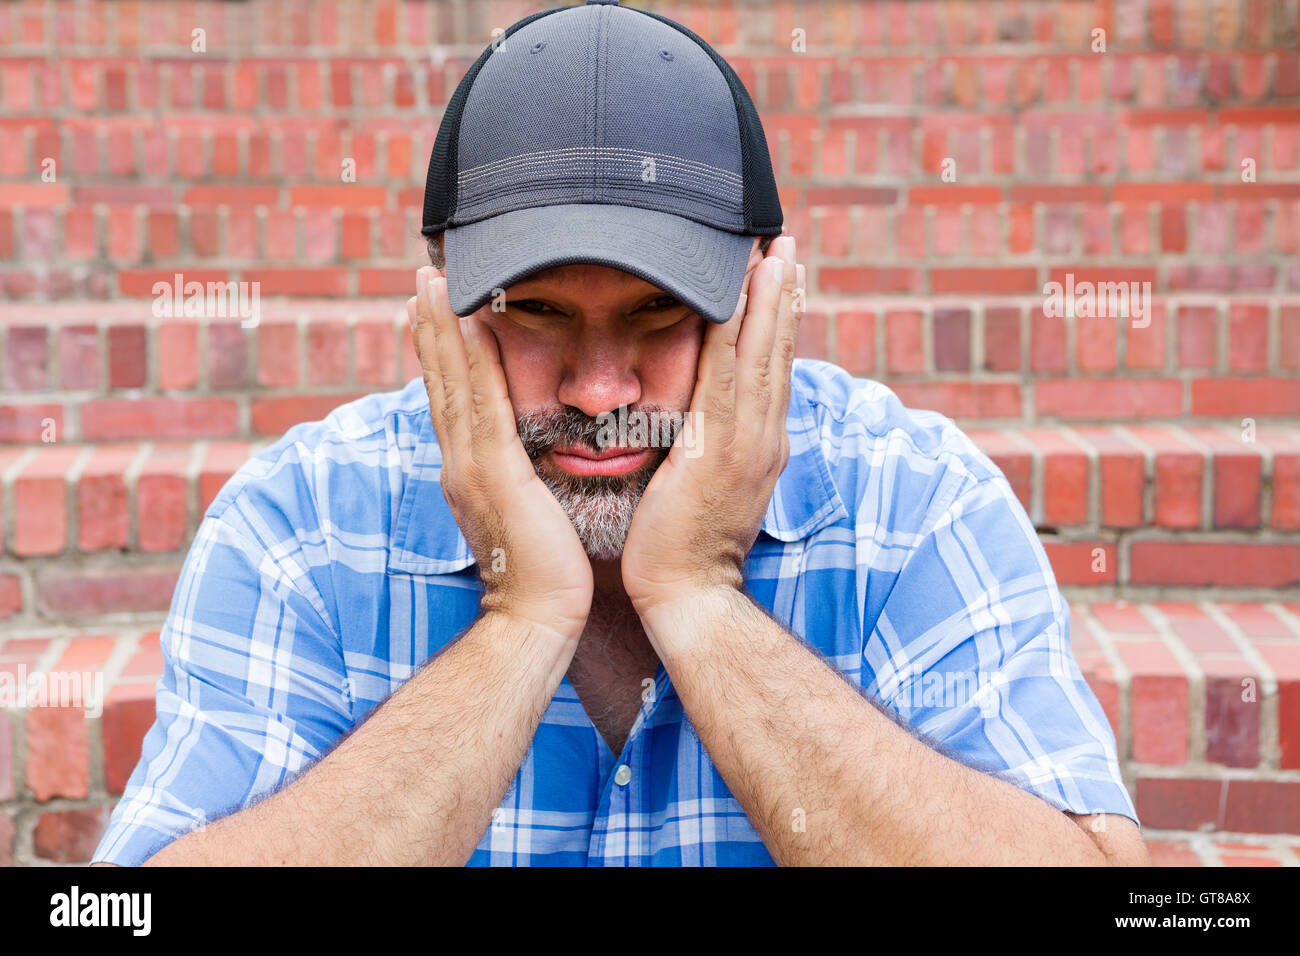 Boredom - the enemy of human happiness in a conceptual image of a middle-aged man with a goatee sitting resting - Stock Image